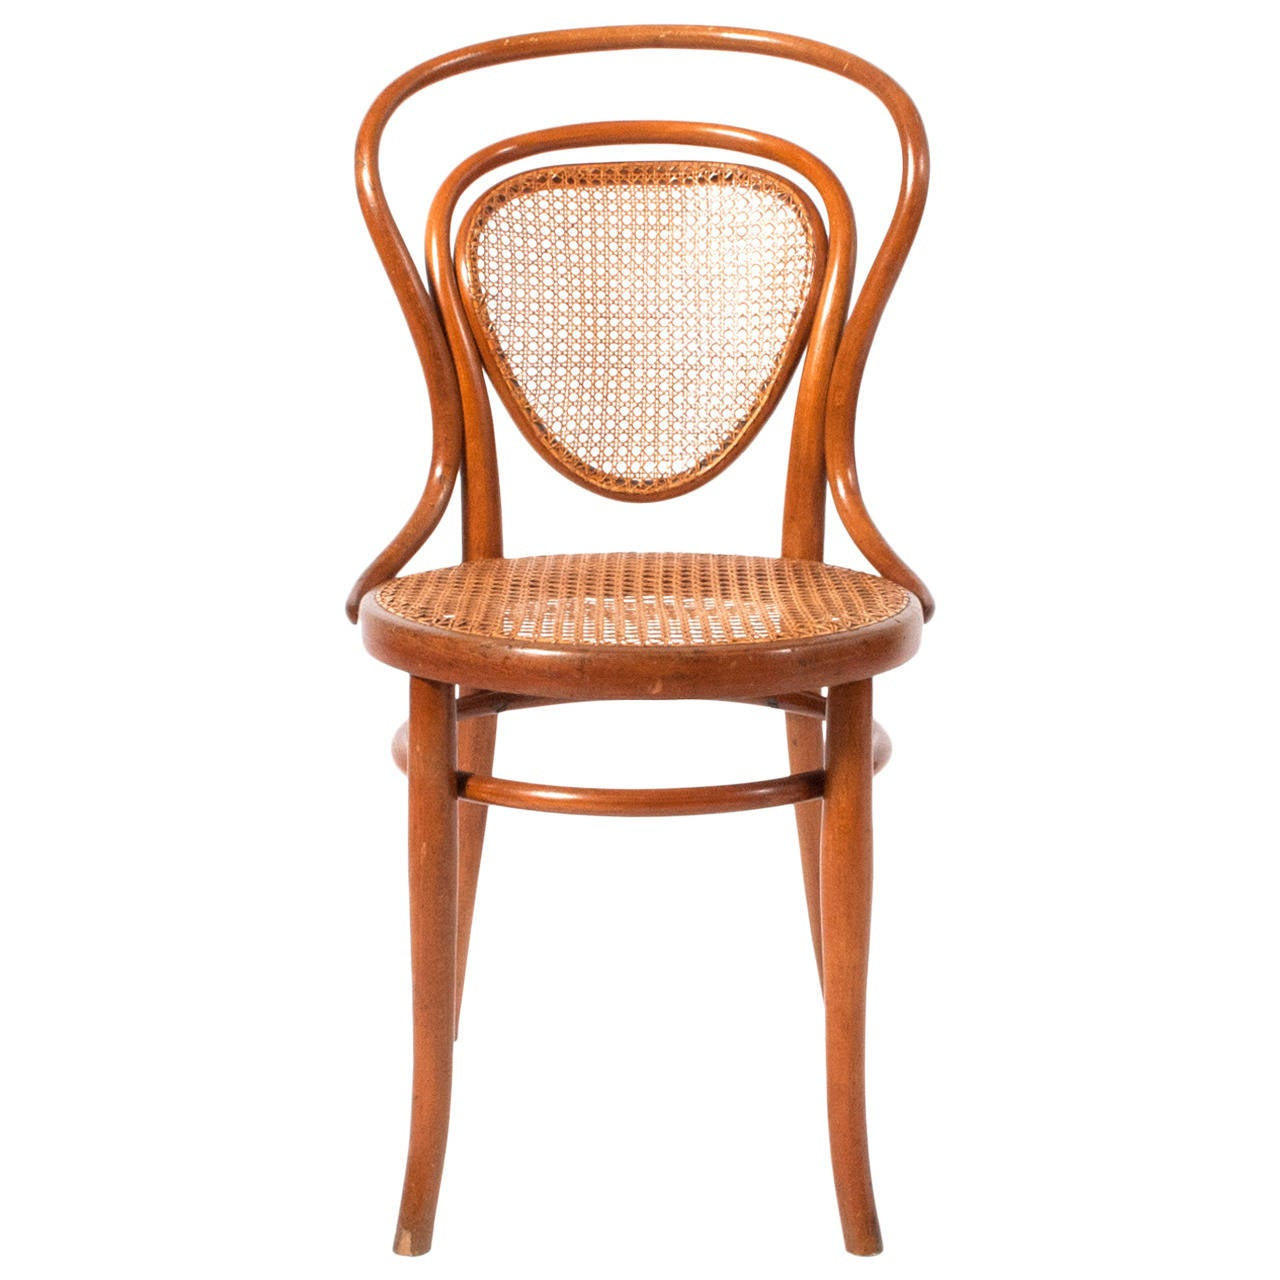 bent wood chair used dialysis chairs for sale early j and kohn bentwood 1900 at 1stdibs